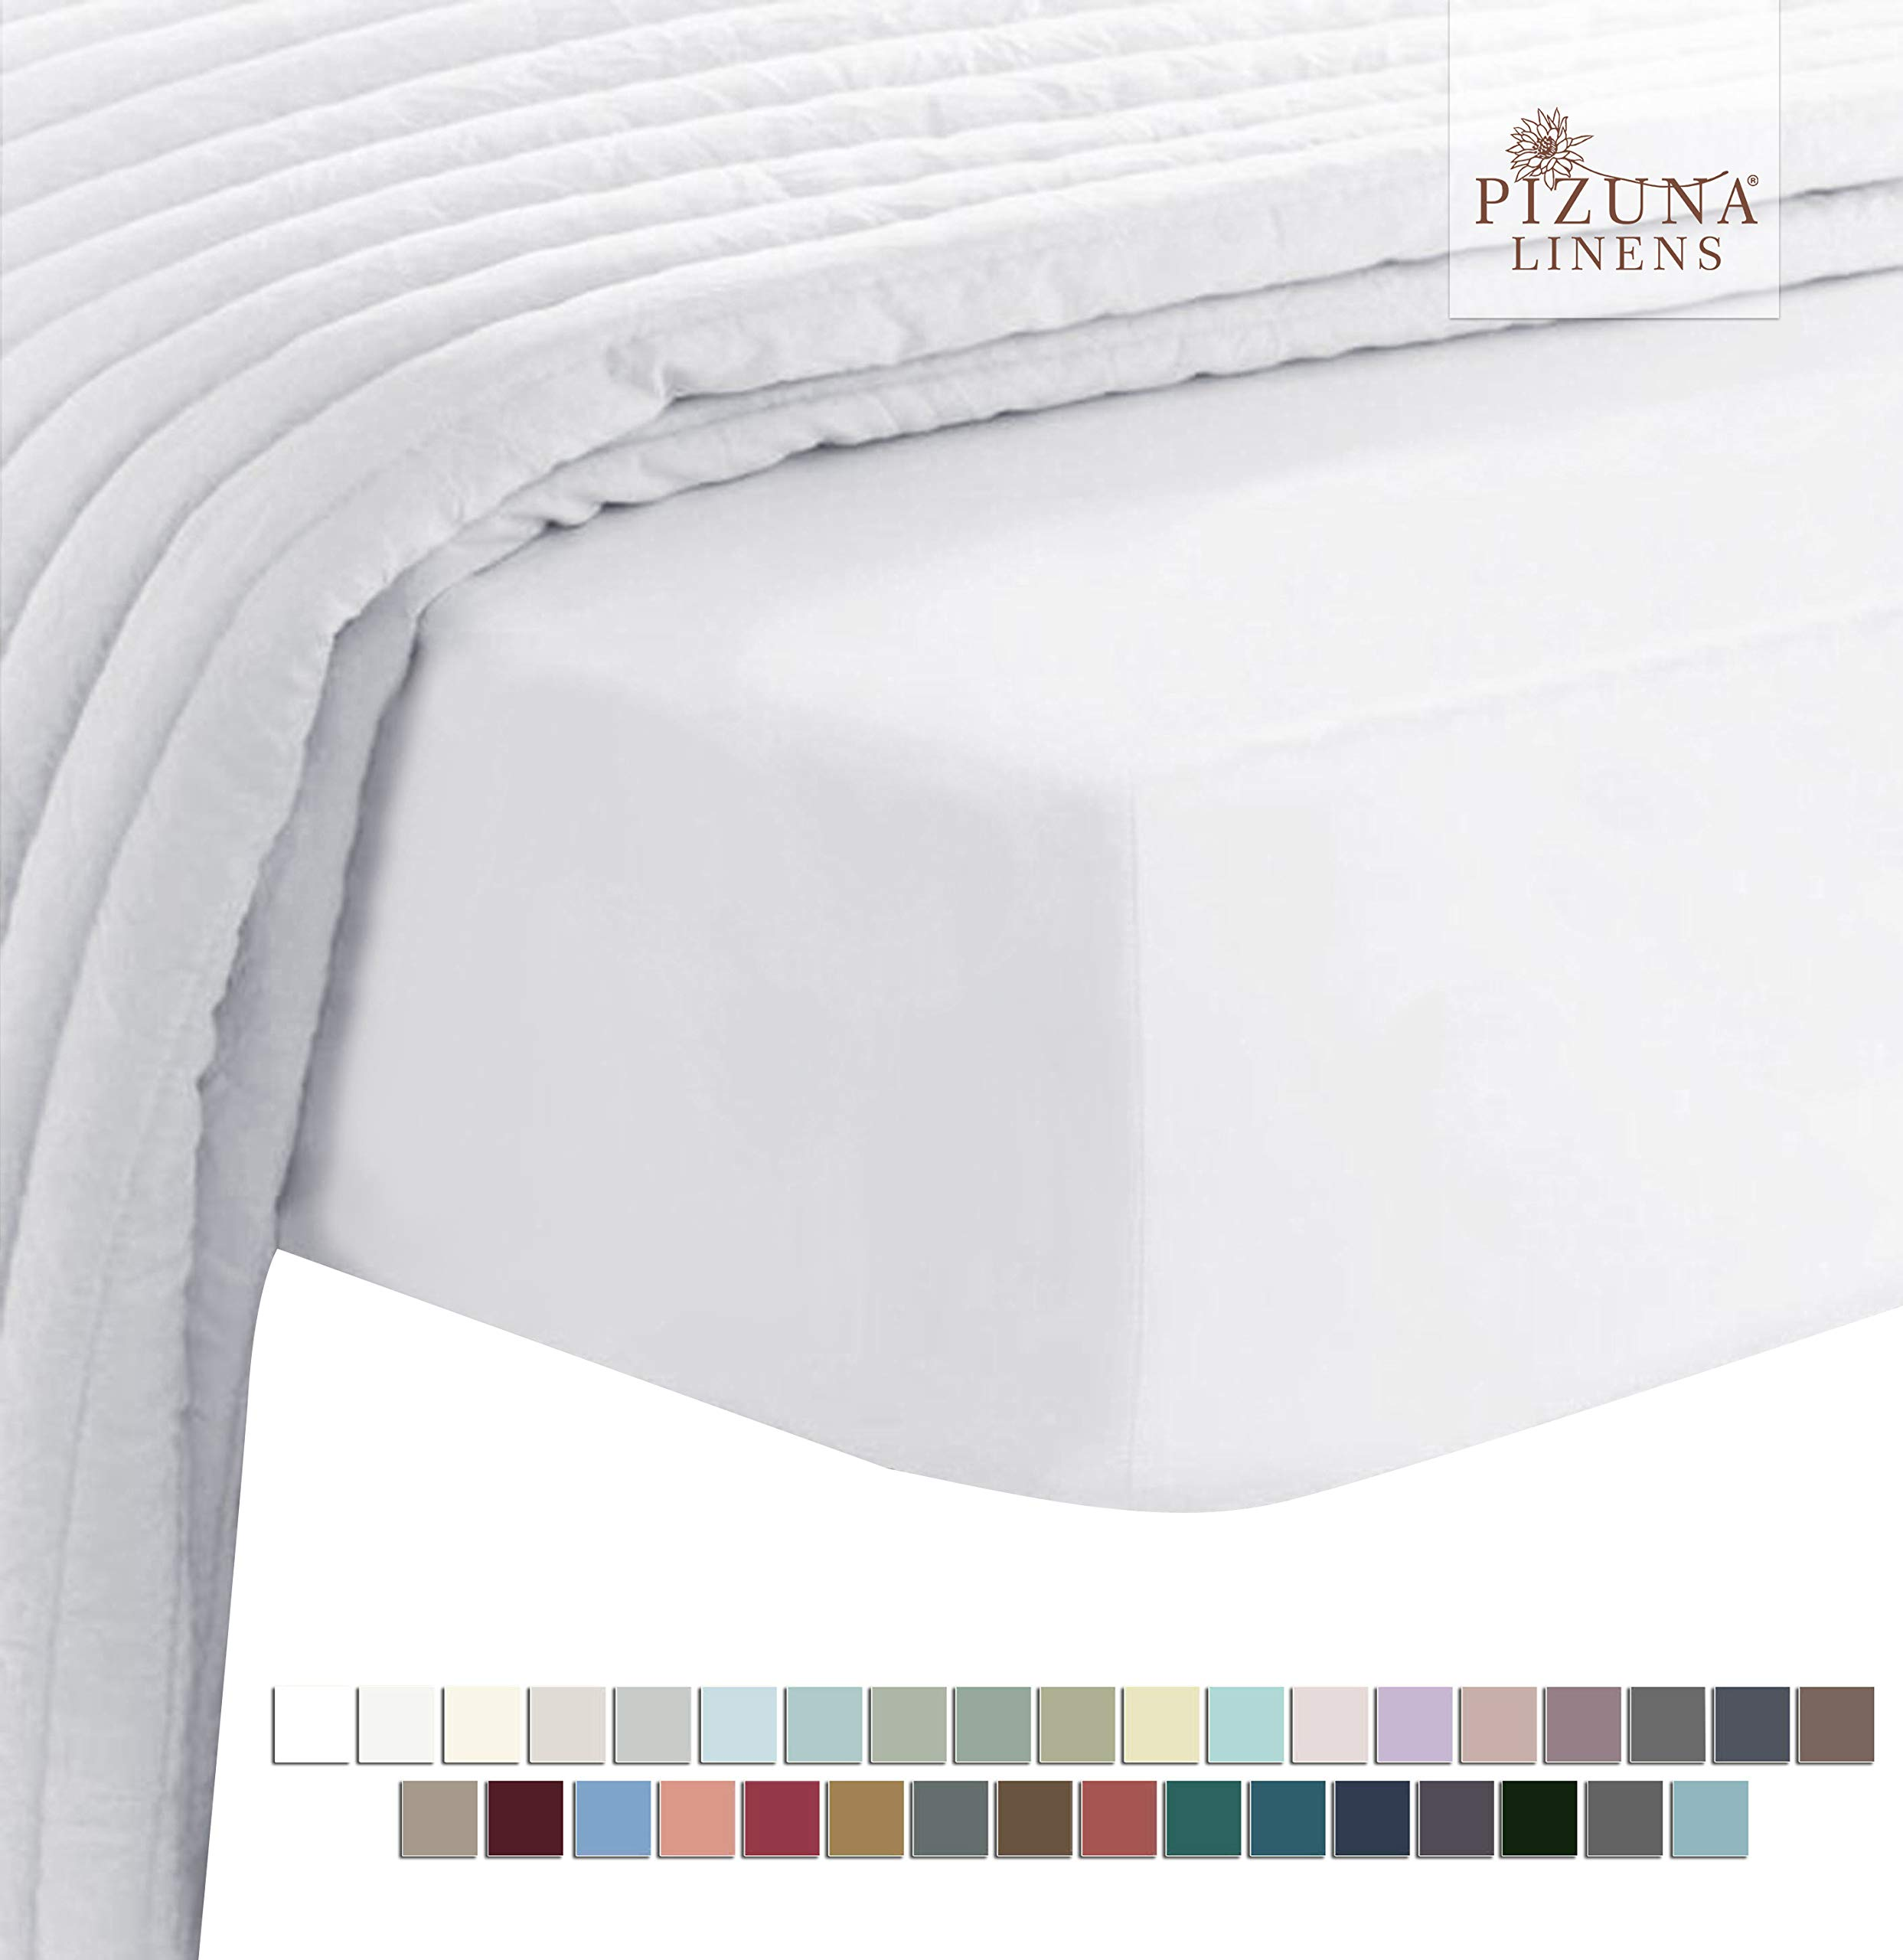 Pizuna Soft 400 Thread Count Cotton Queen Fitted Sheets White 1pc, 100% Long Staple Cotton Soft Sateen Bed Fitted Sheets fit Upto 15 inch Deep Pocket (White 100% Cotton Deep Fitted Sheet Queen) by Pizuna